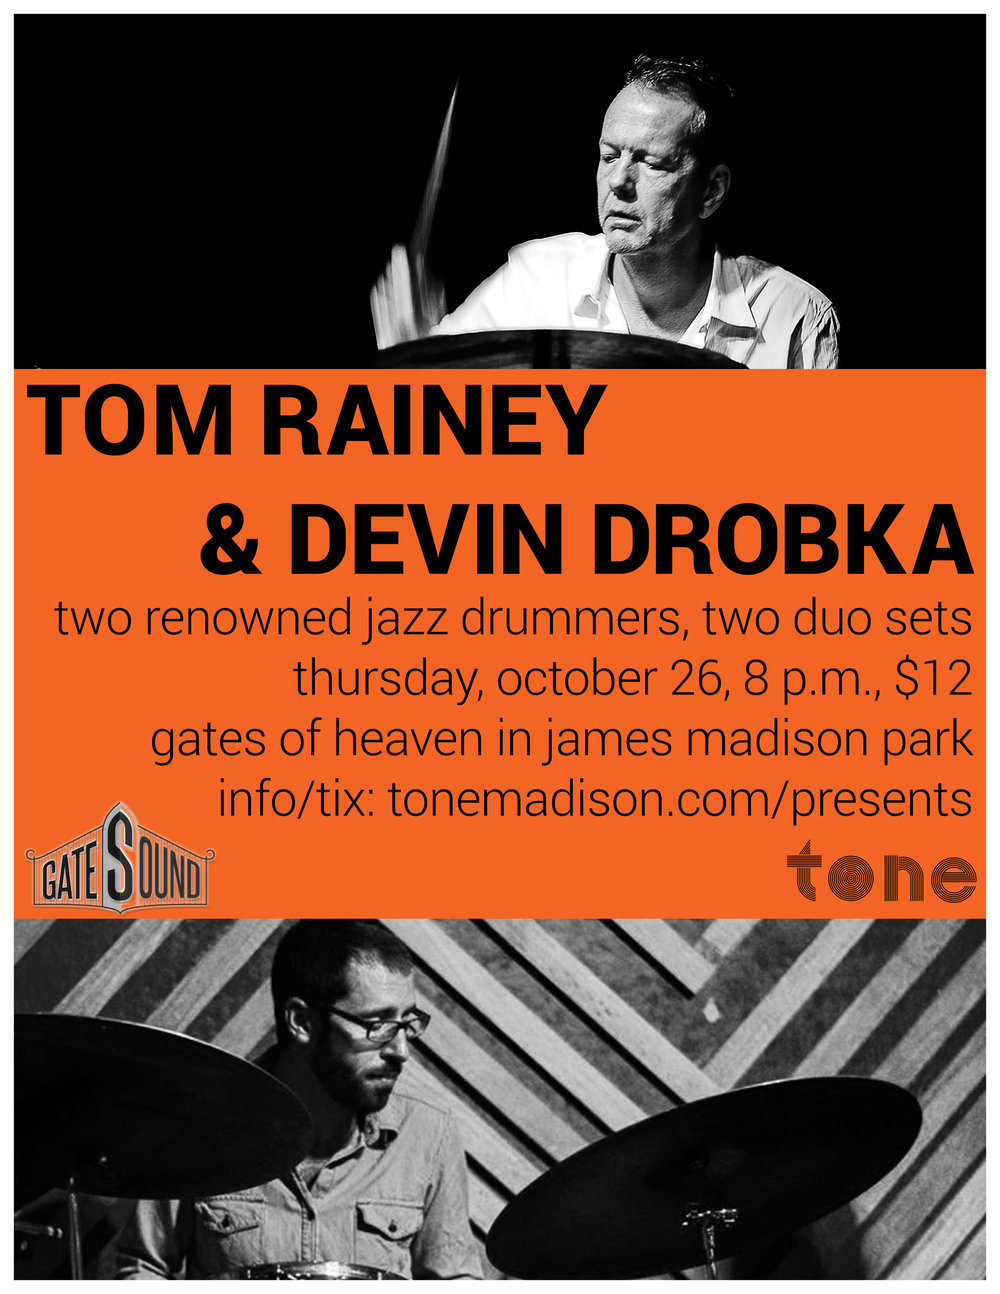 10/26/2017: Tom Rainey And Devin Drobka Duo